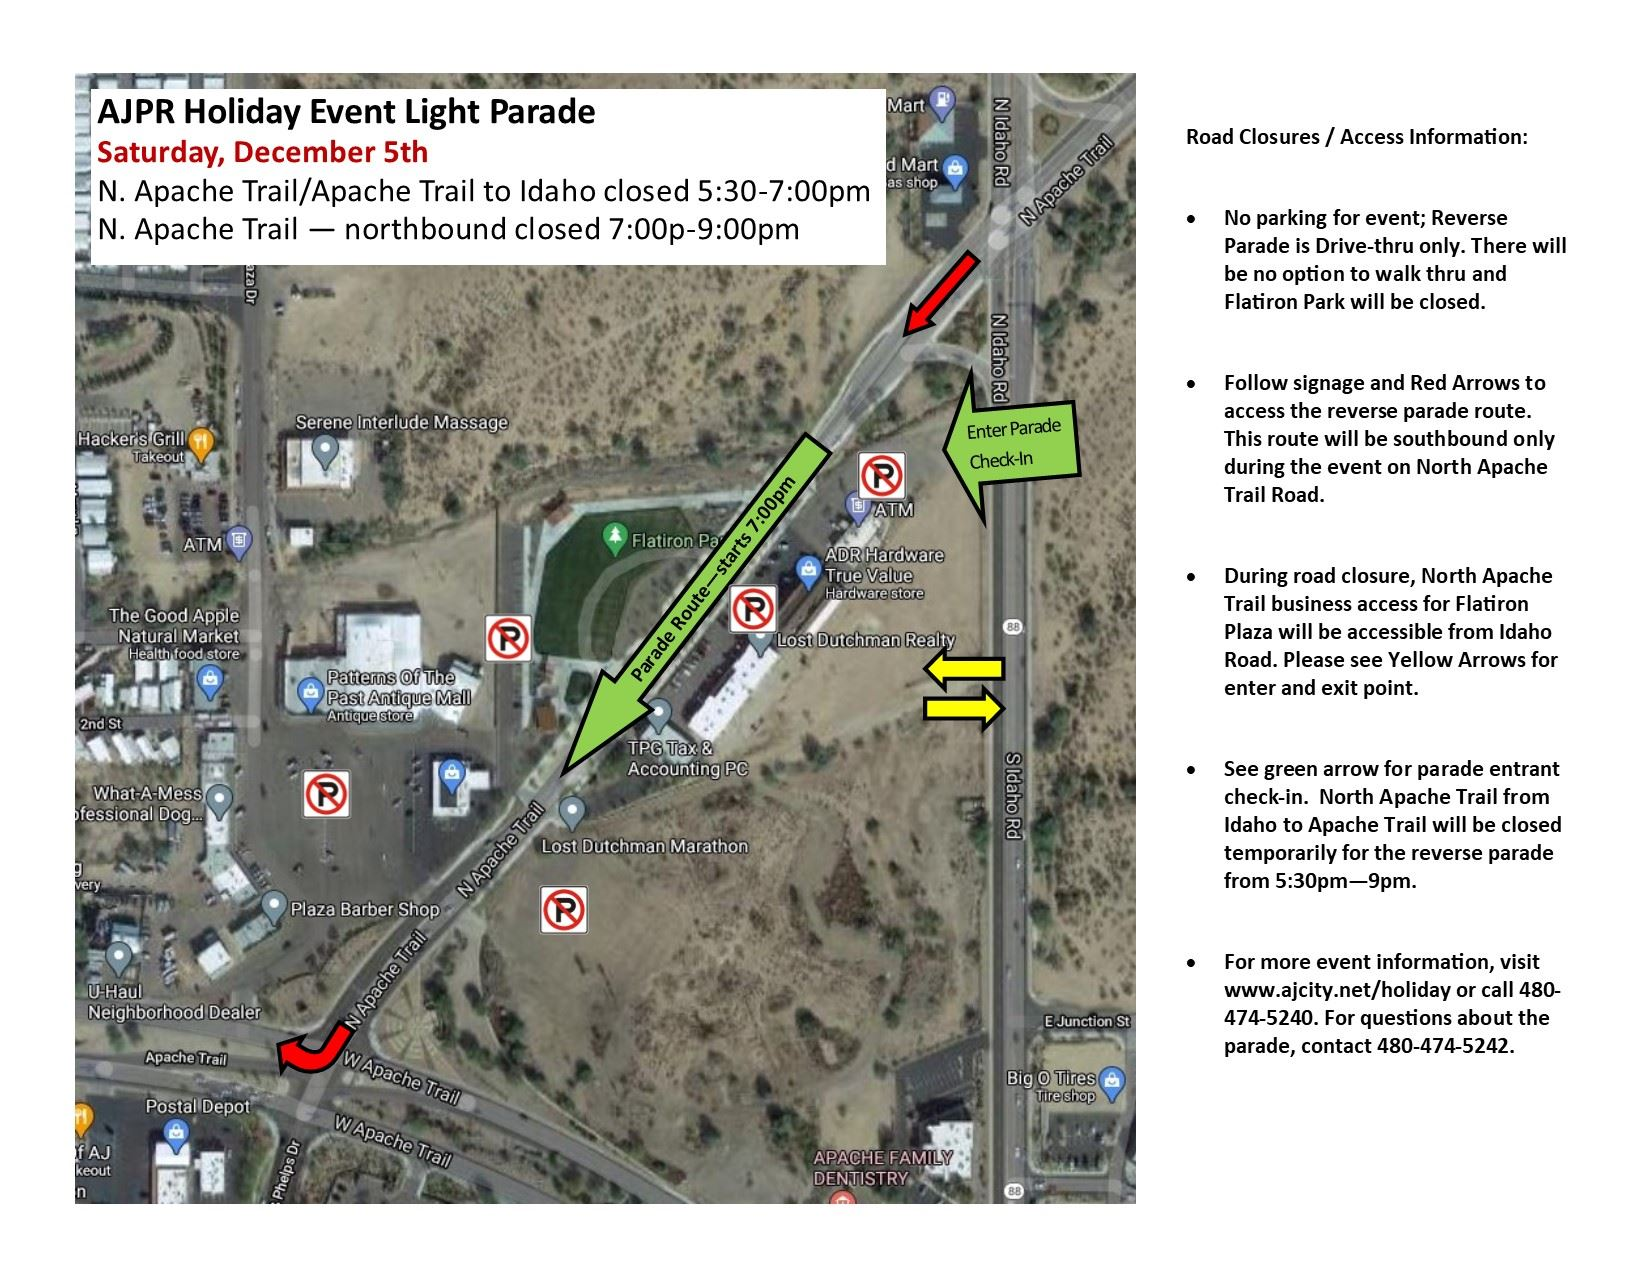 2020 Light Parade Road Closure and Route and Check-In Map